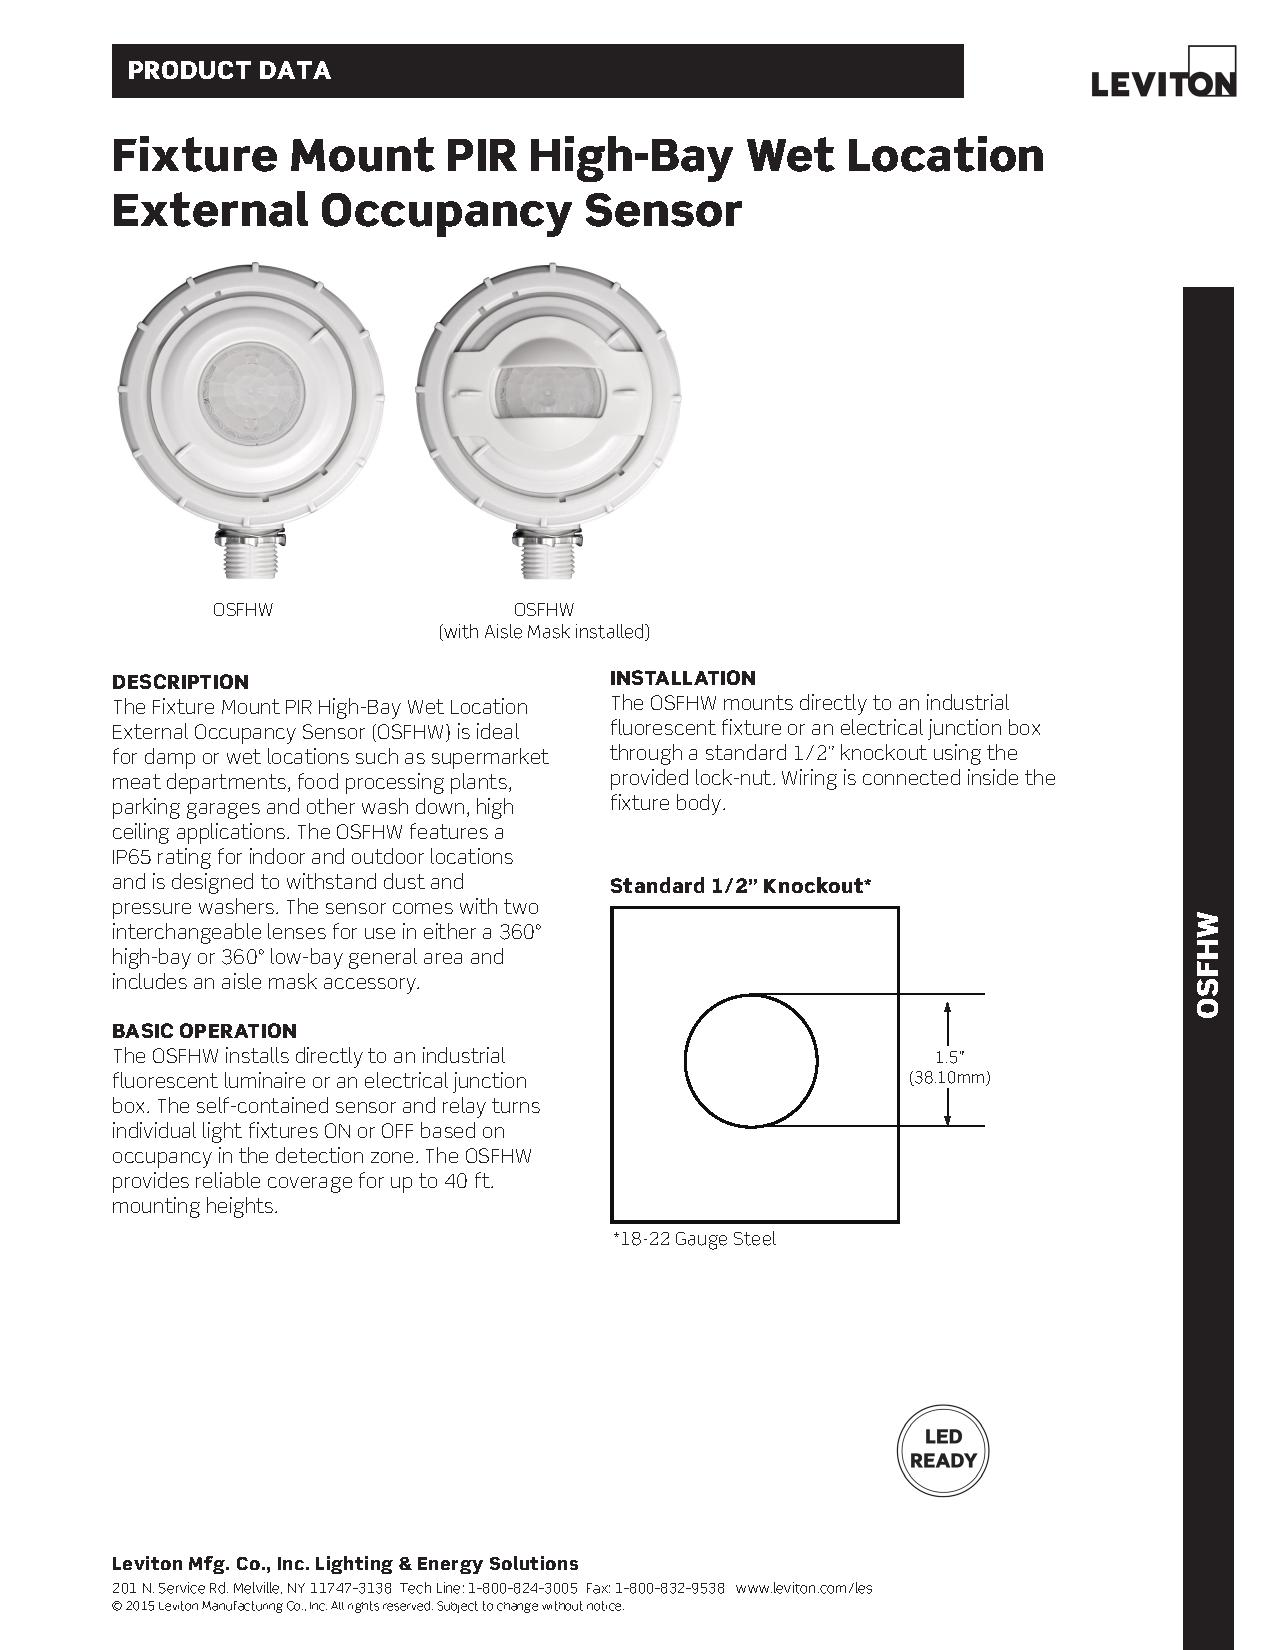 Leviton OSFHW Wet Location External High Bay Occupancy Sensor